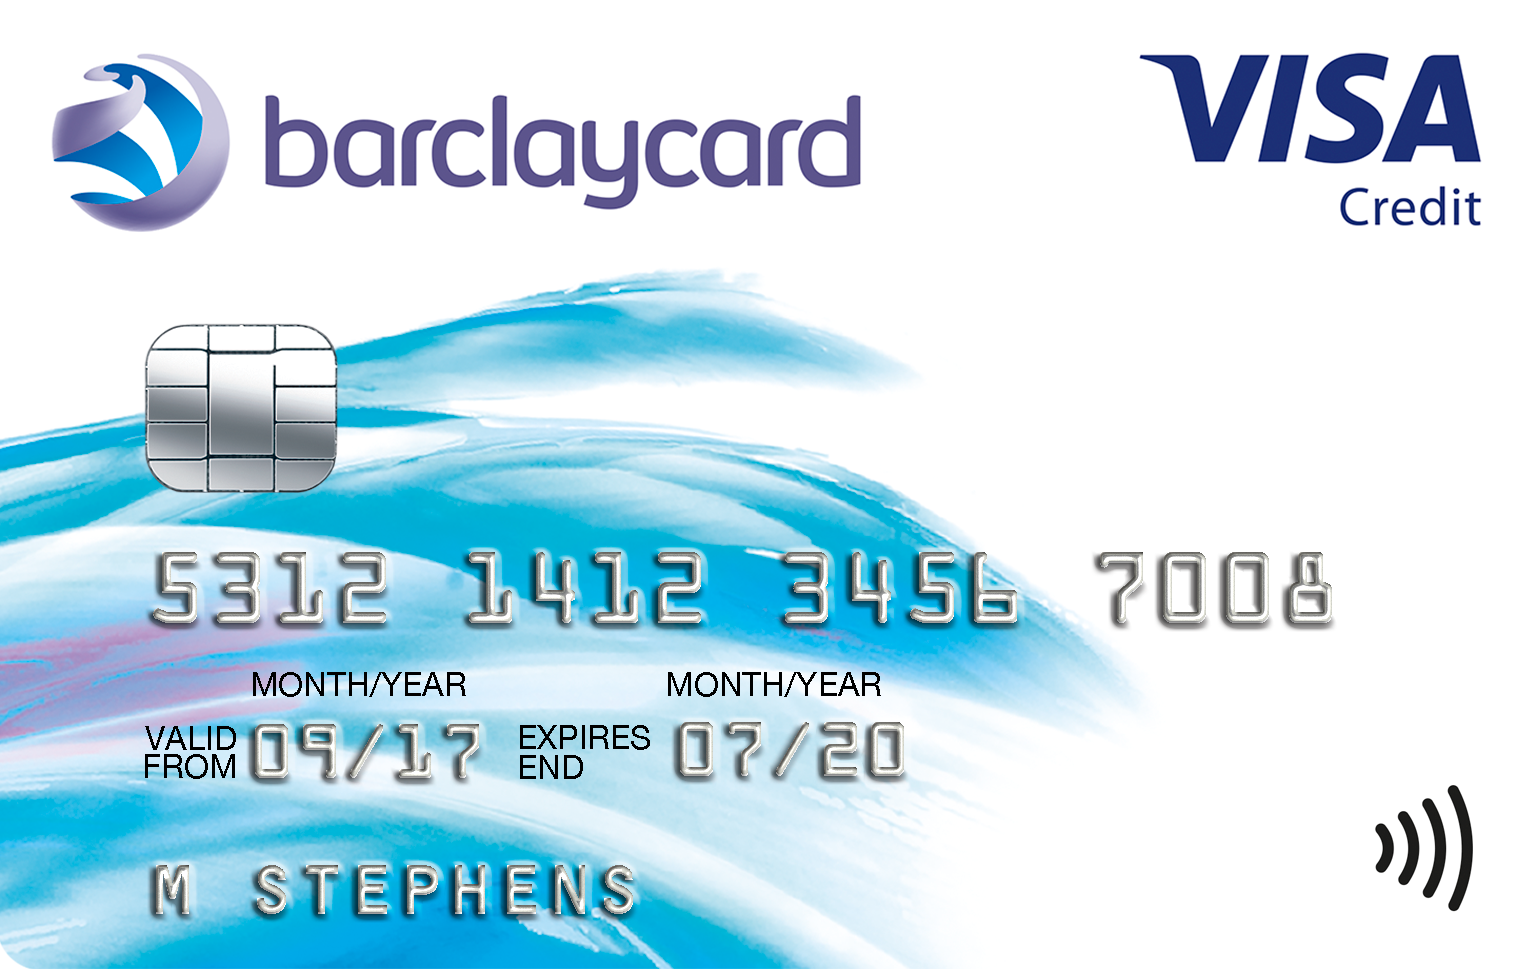 Barclaycard Initial Credit Card - supacompare.co.uk